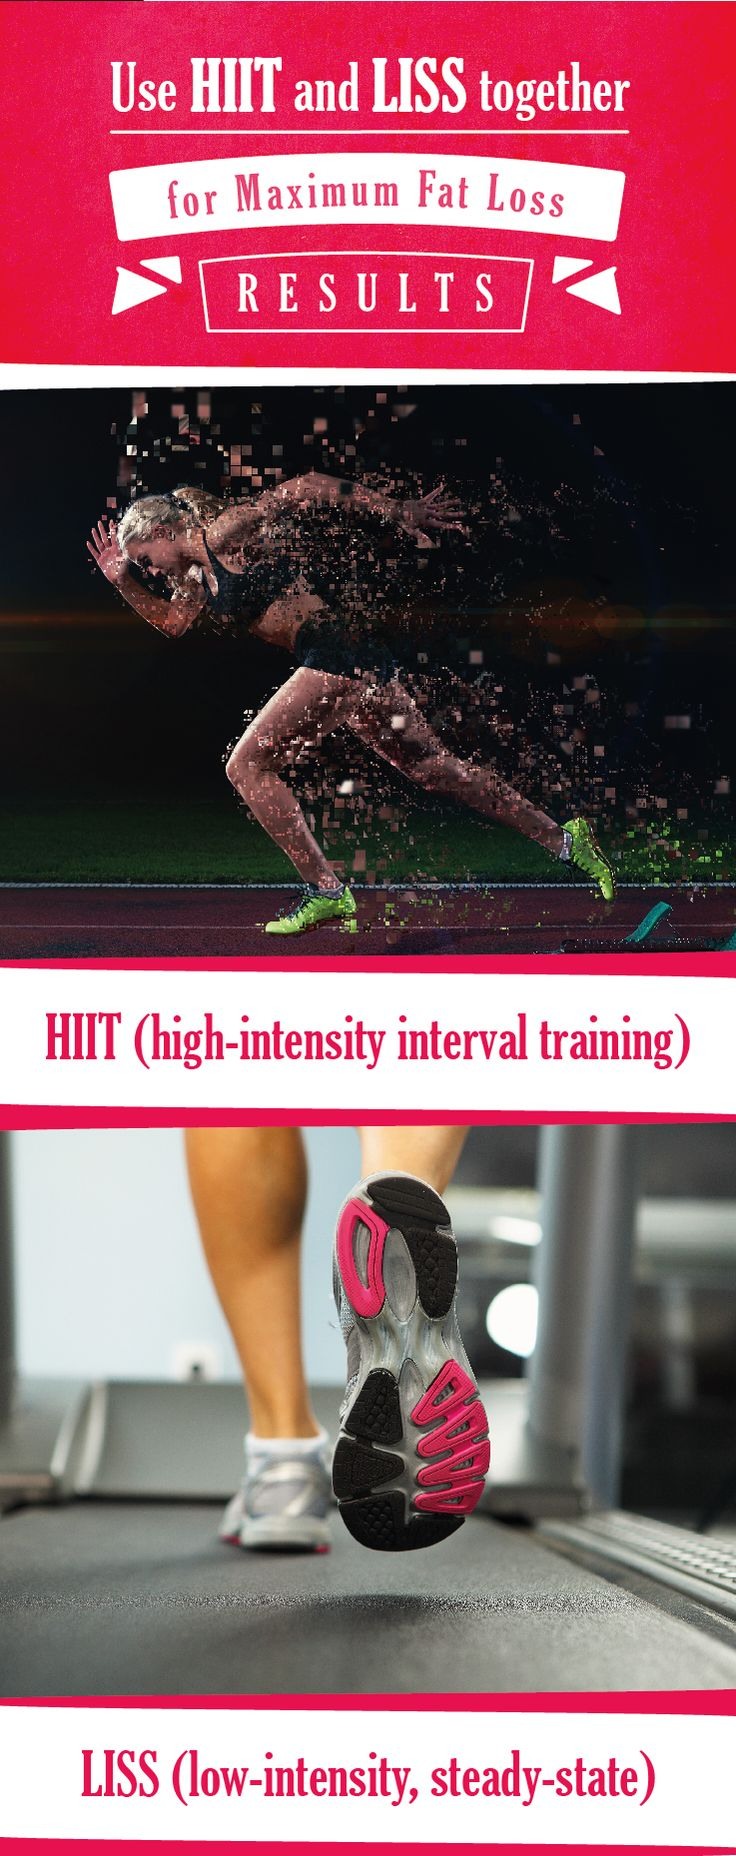 You spend a lot of time on the treadmill? Well, don't keep walking unless you take your steady-state cardio with a side of high-intensity interval training. #Cardio